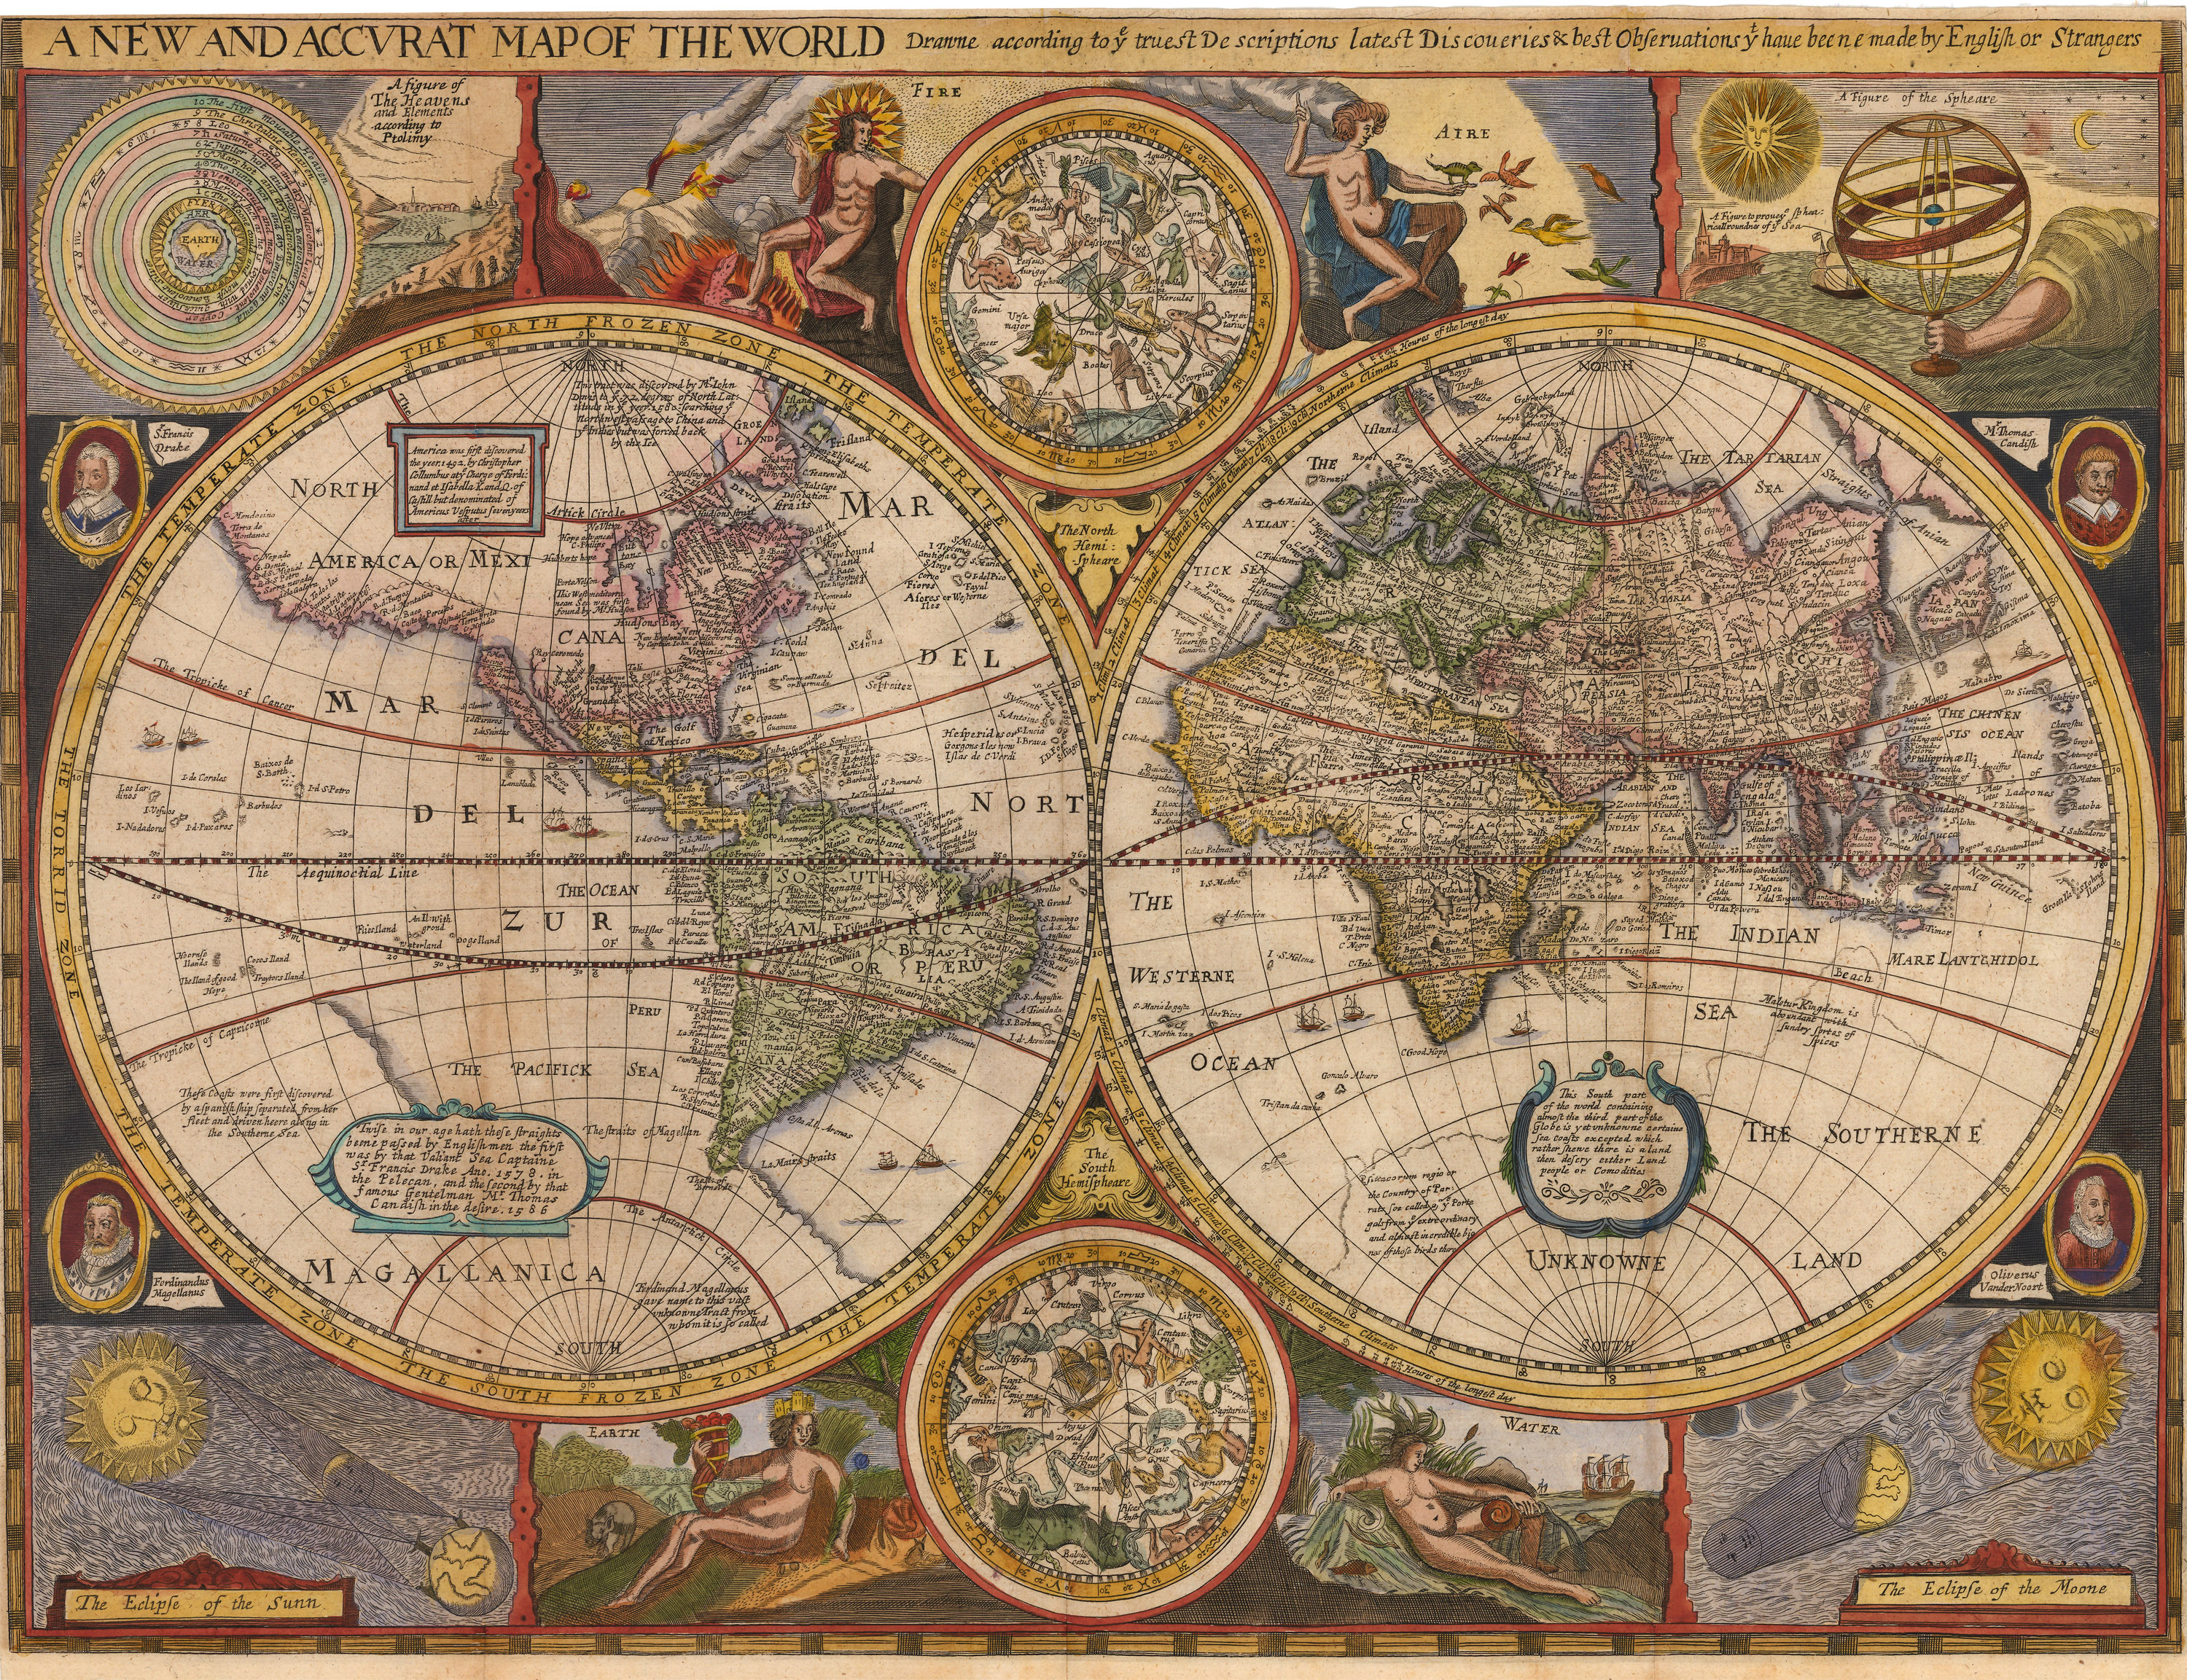 Map Of The World In English.1659 A New And Accurat Map Of The World Drawne According To Ye Truest Descriptions